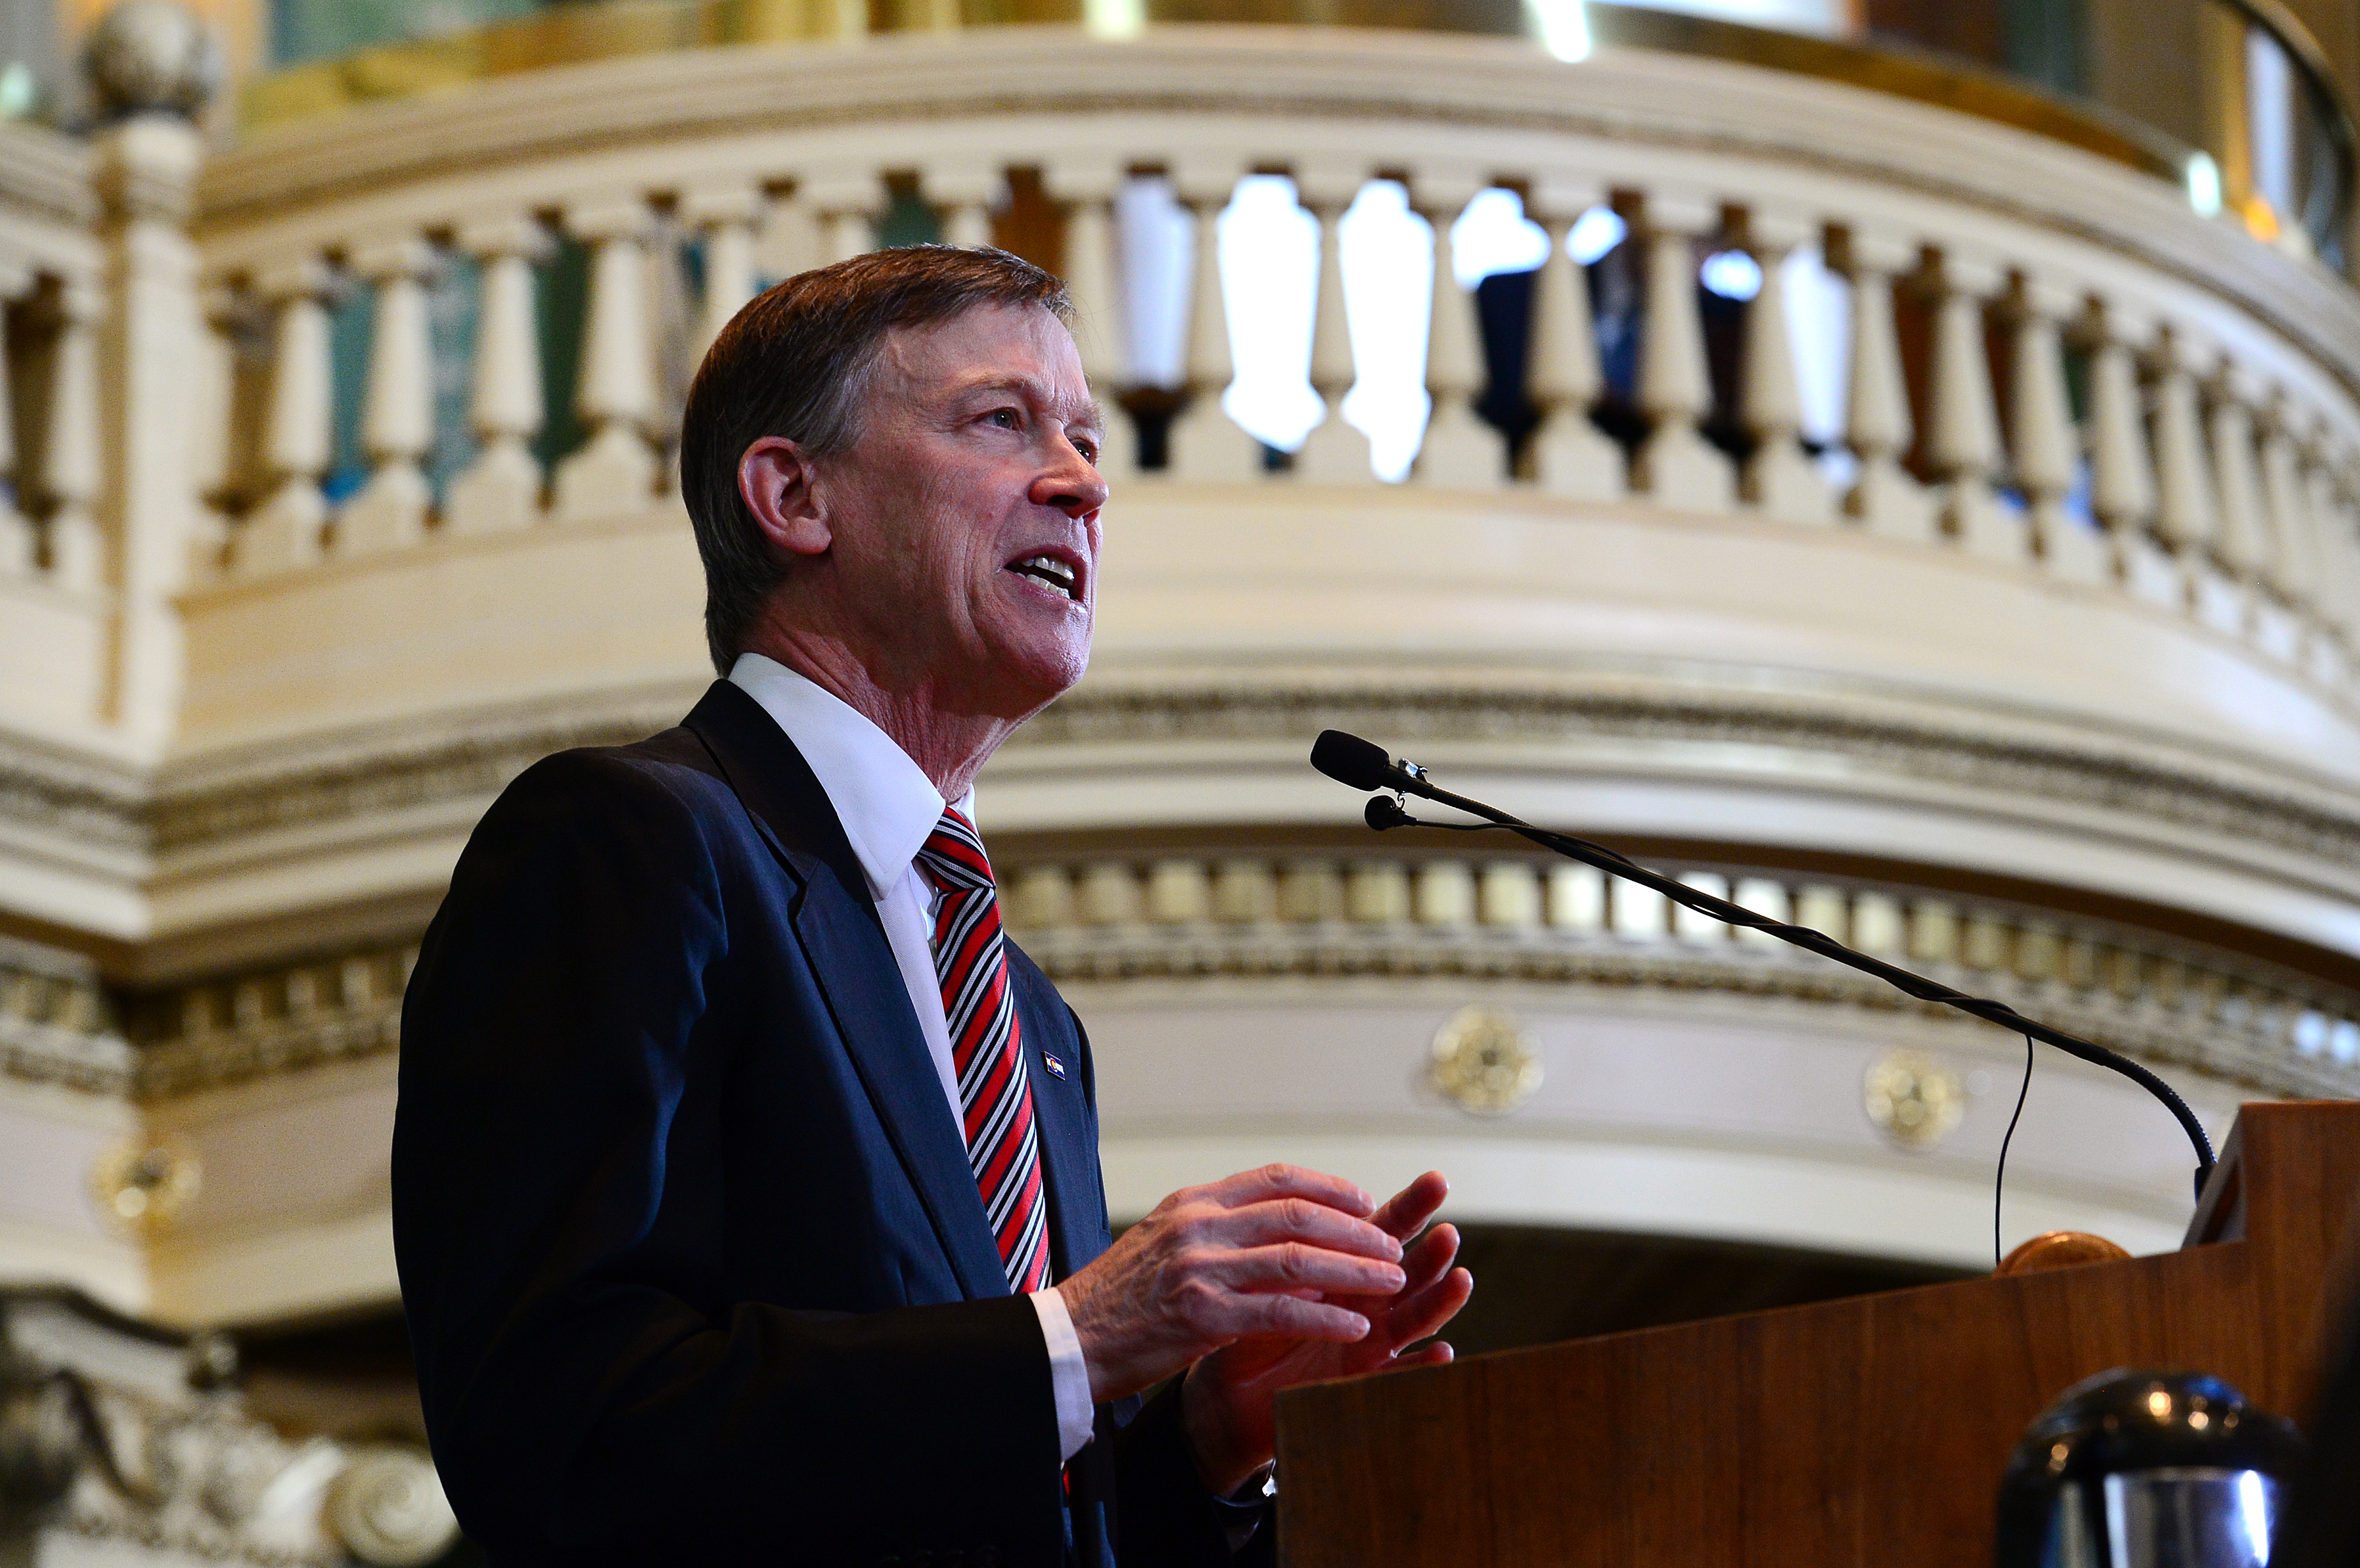 Colorado Governor John Hickenlooper gives his State of the State speech inside the House chambers of the State Capitol in Denver, CO on January 15, 2015.